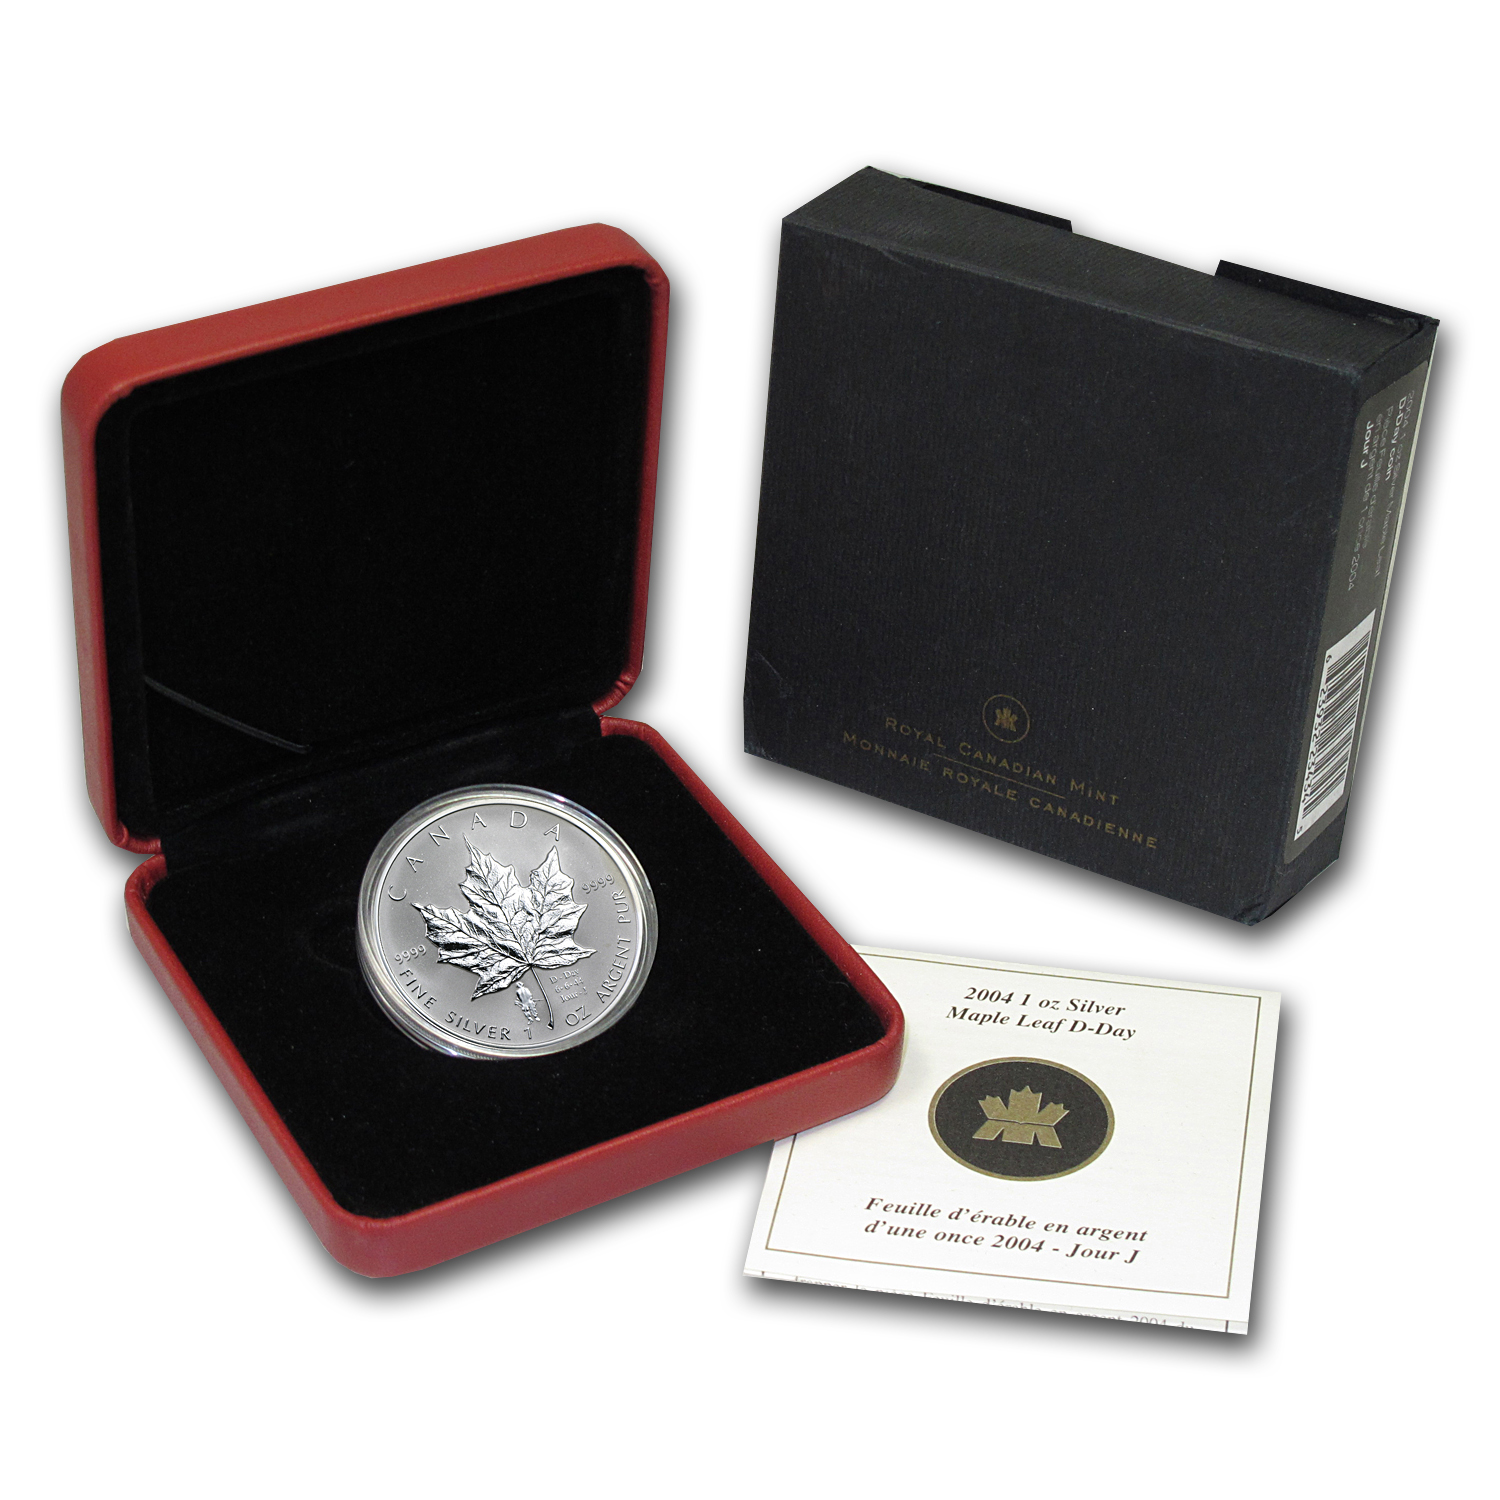 2004 1 oz Silver Canadian Maple Leaf - D-Day Privy (W/Box & COA)